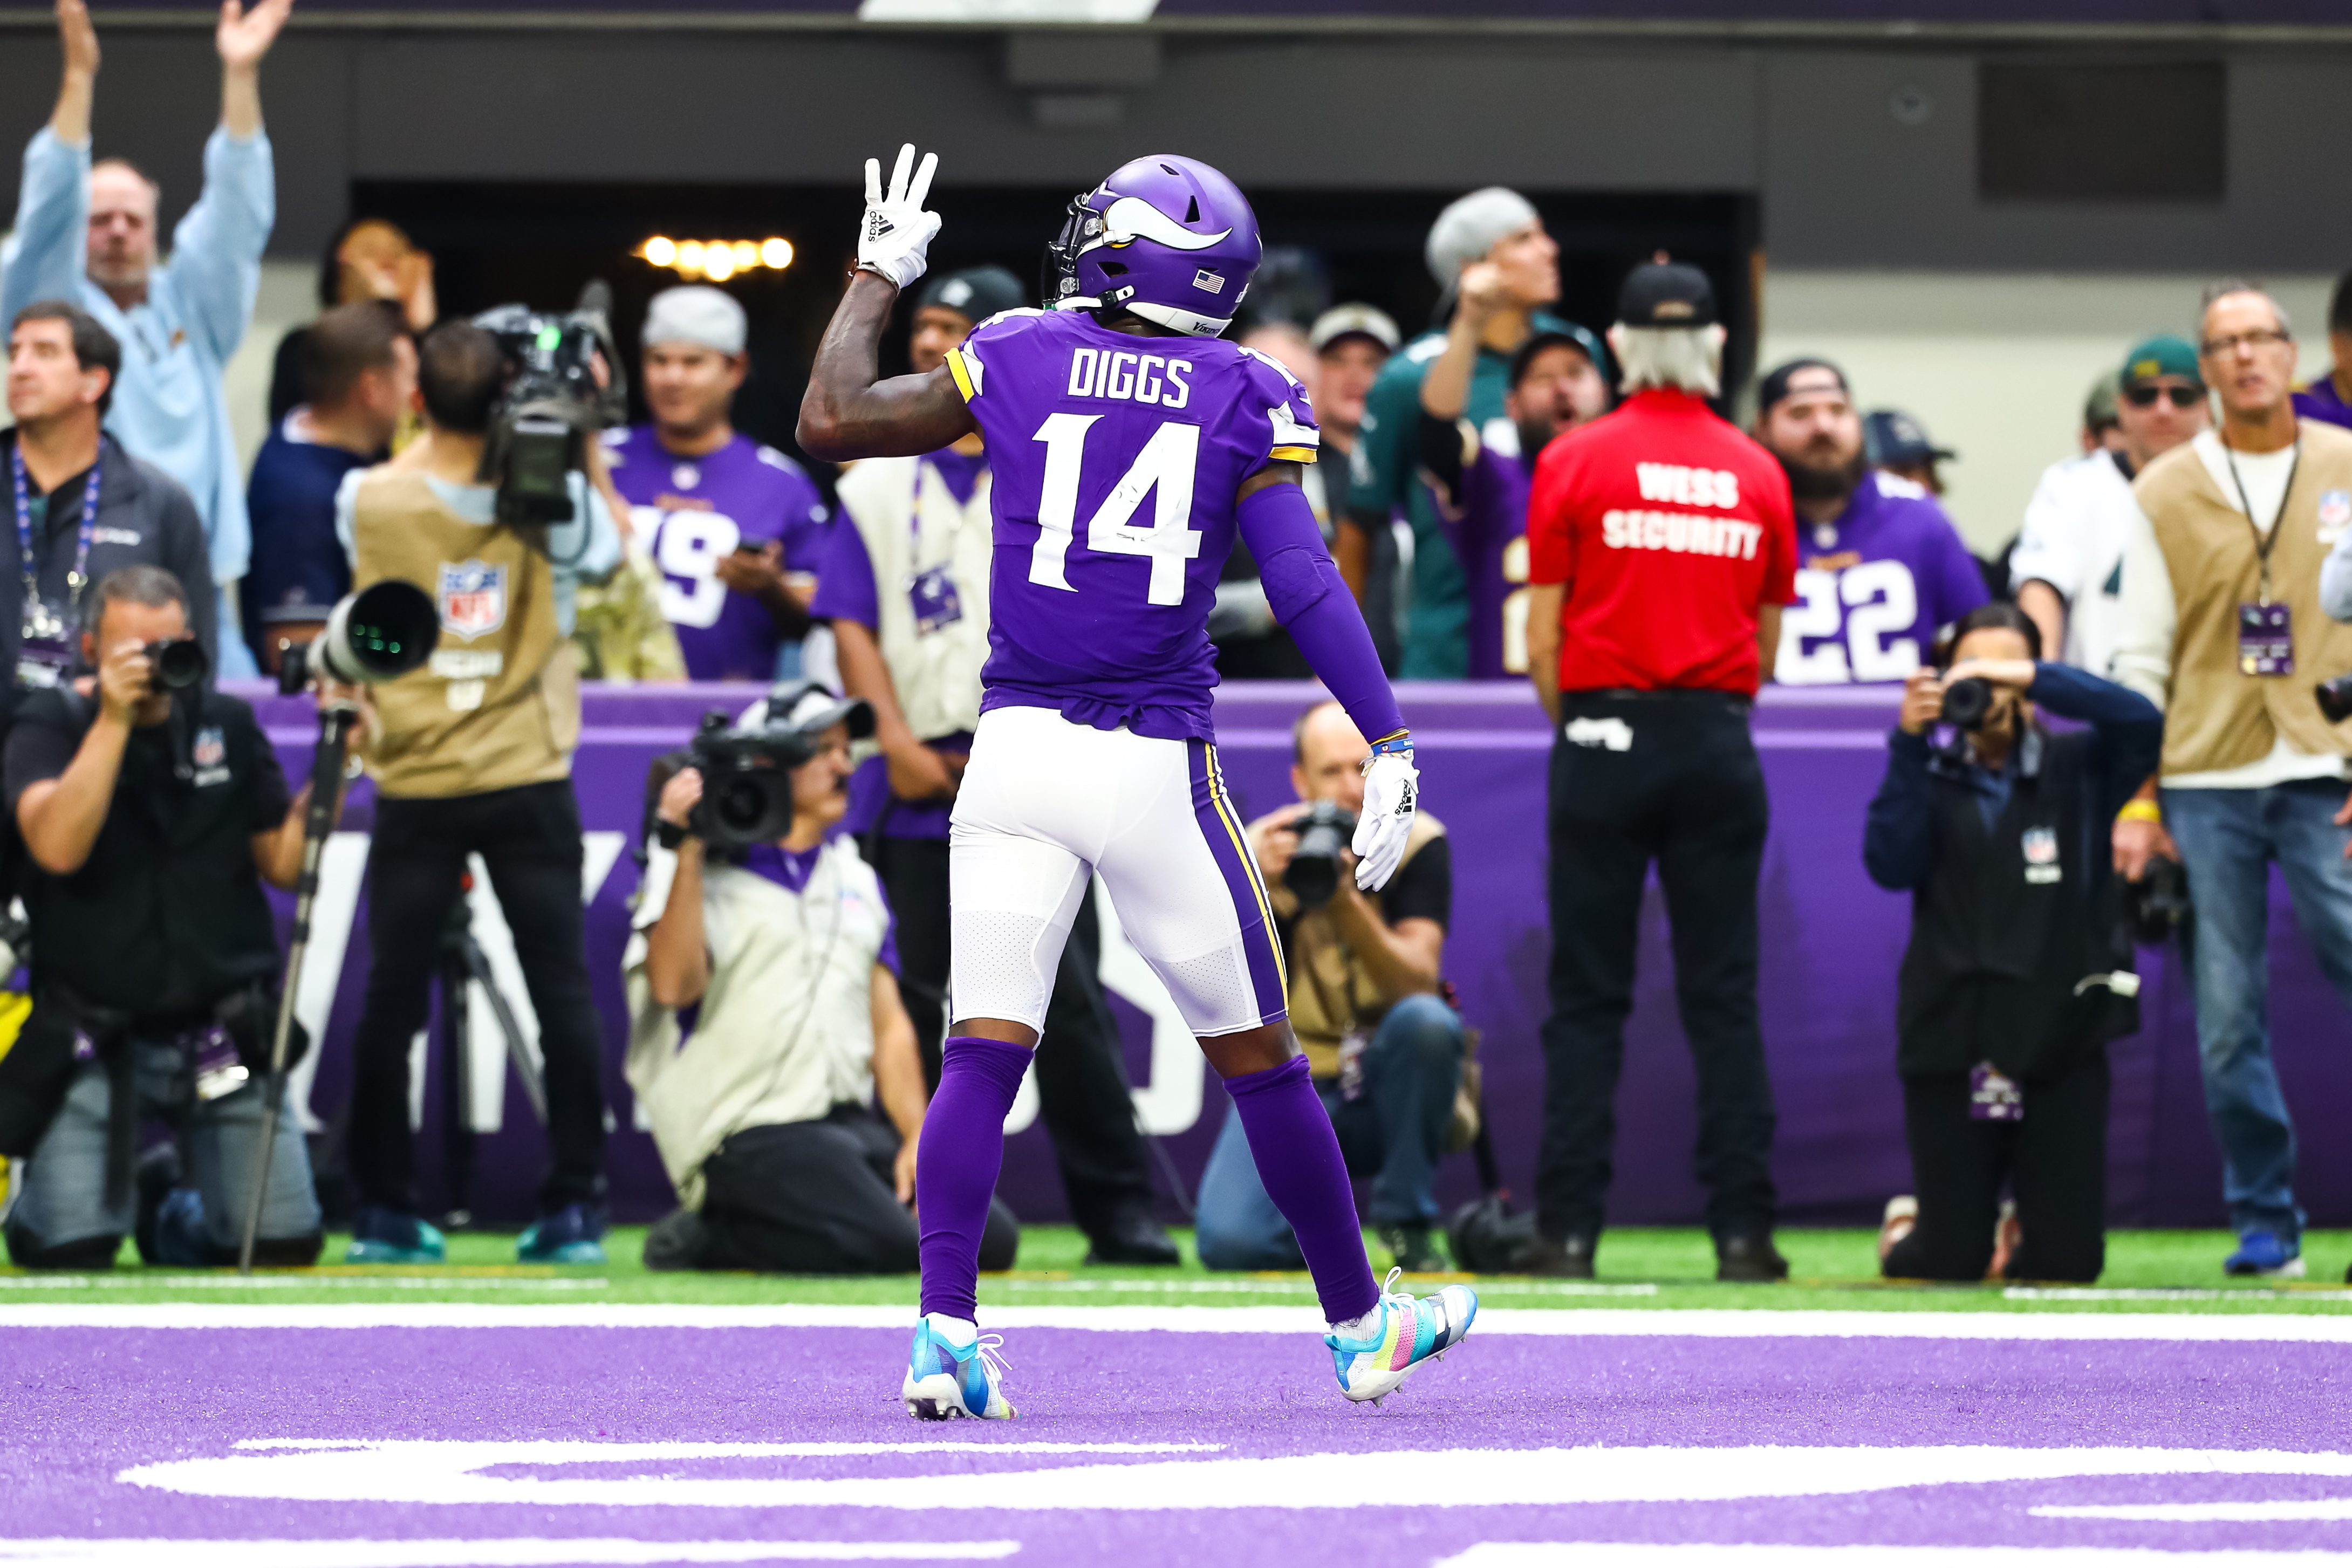 Minnesota Vikings wide receiver Stefon Diggs celebrates after catching a pass for a touchdown in the third quarter against the Philadelphia Eagles at U.S. Bank Stadium.